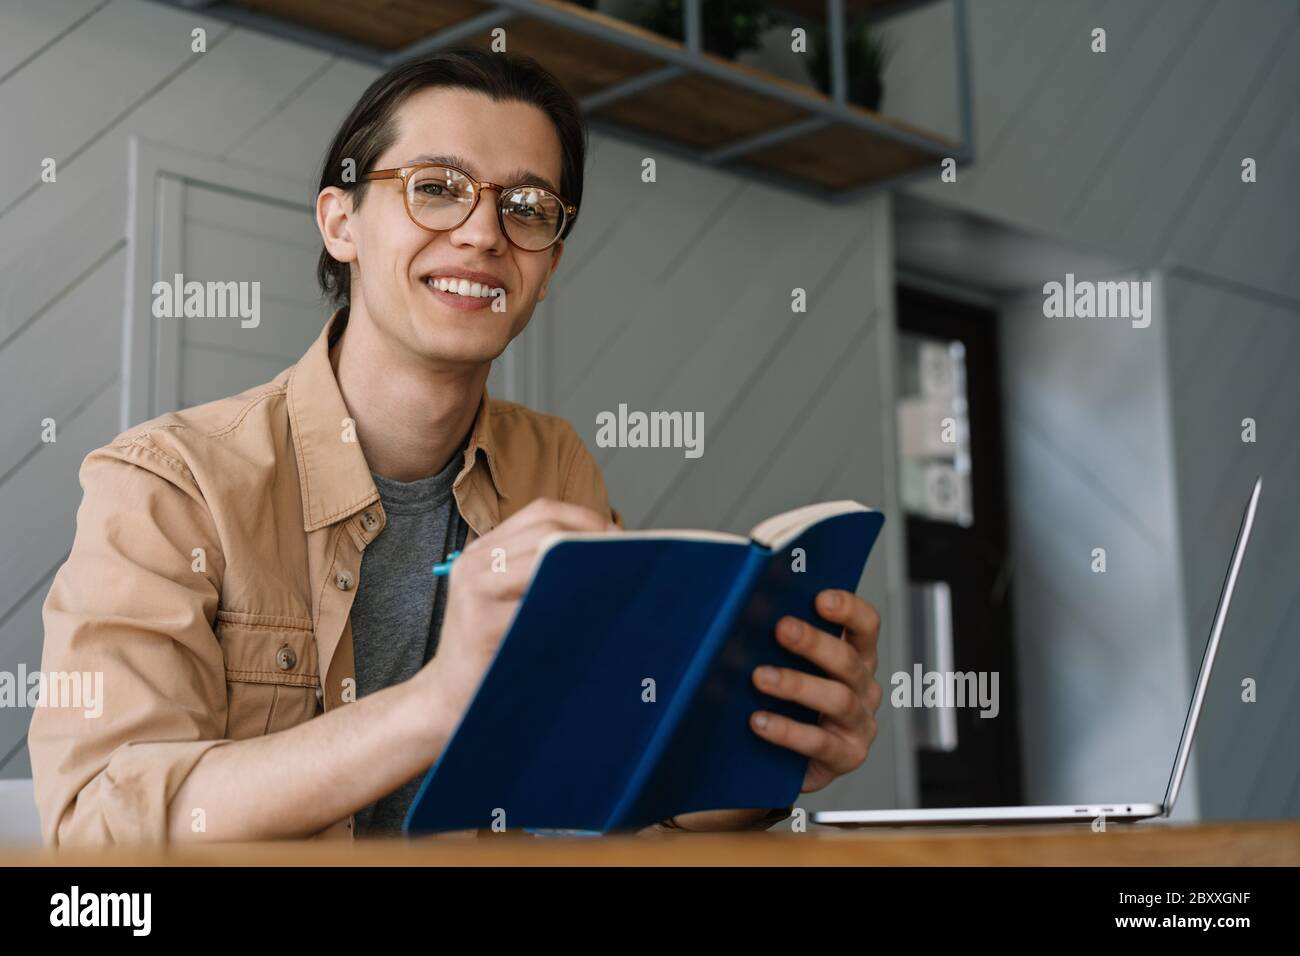 Student studying, distance learning. Smiling hipster man taking notes in notebook, working freelance project from home Stock Photo